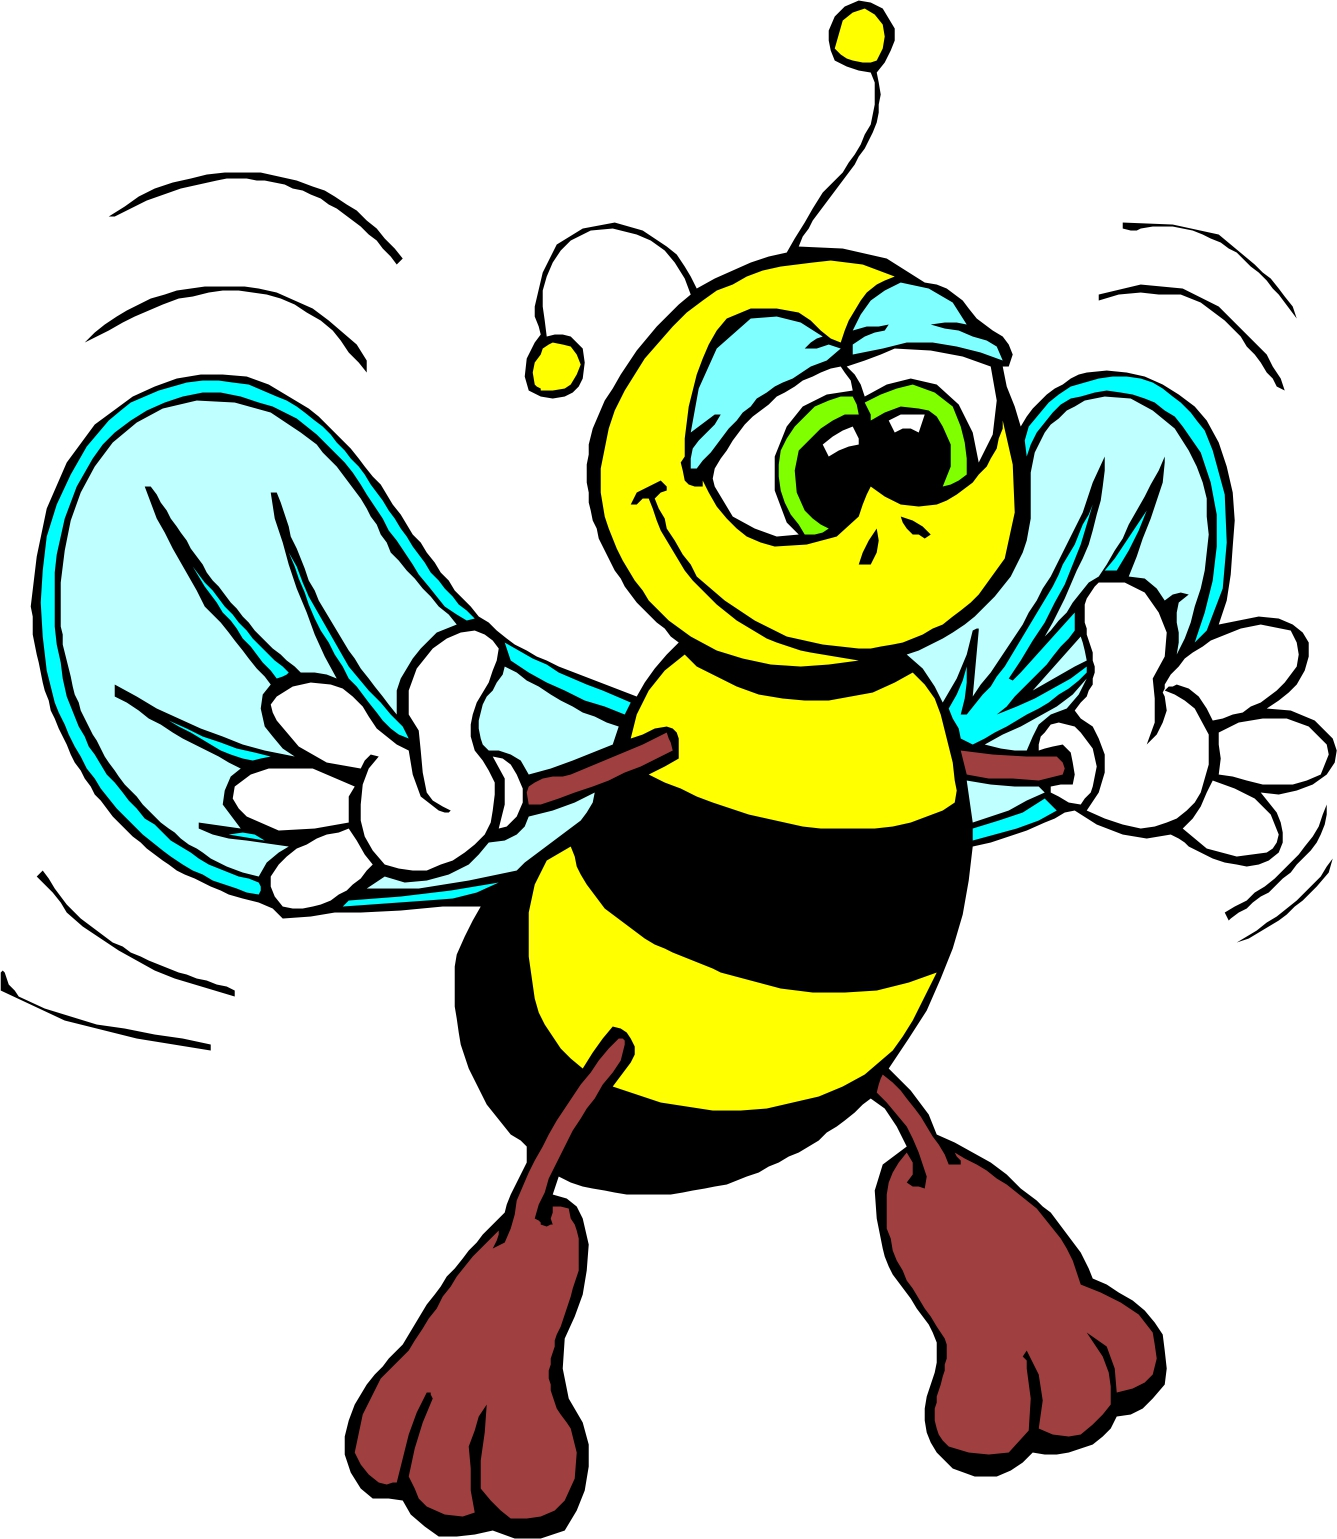 Honey Bee Cartoon - ClipArt Best